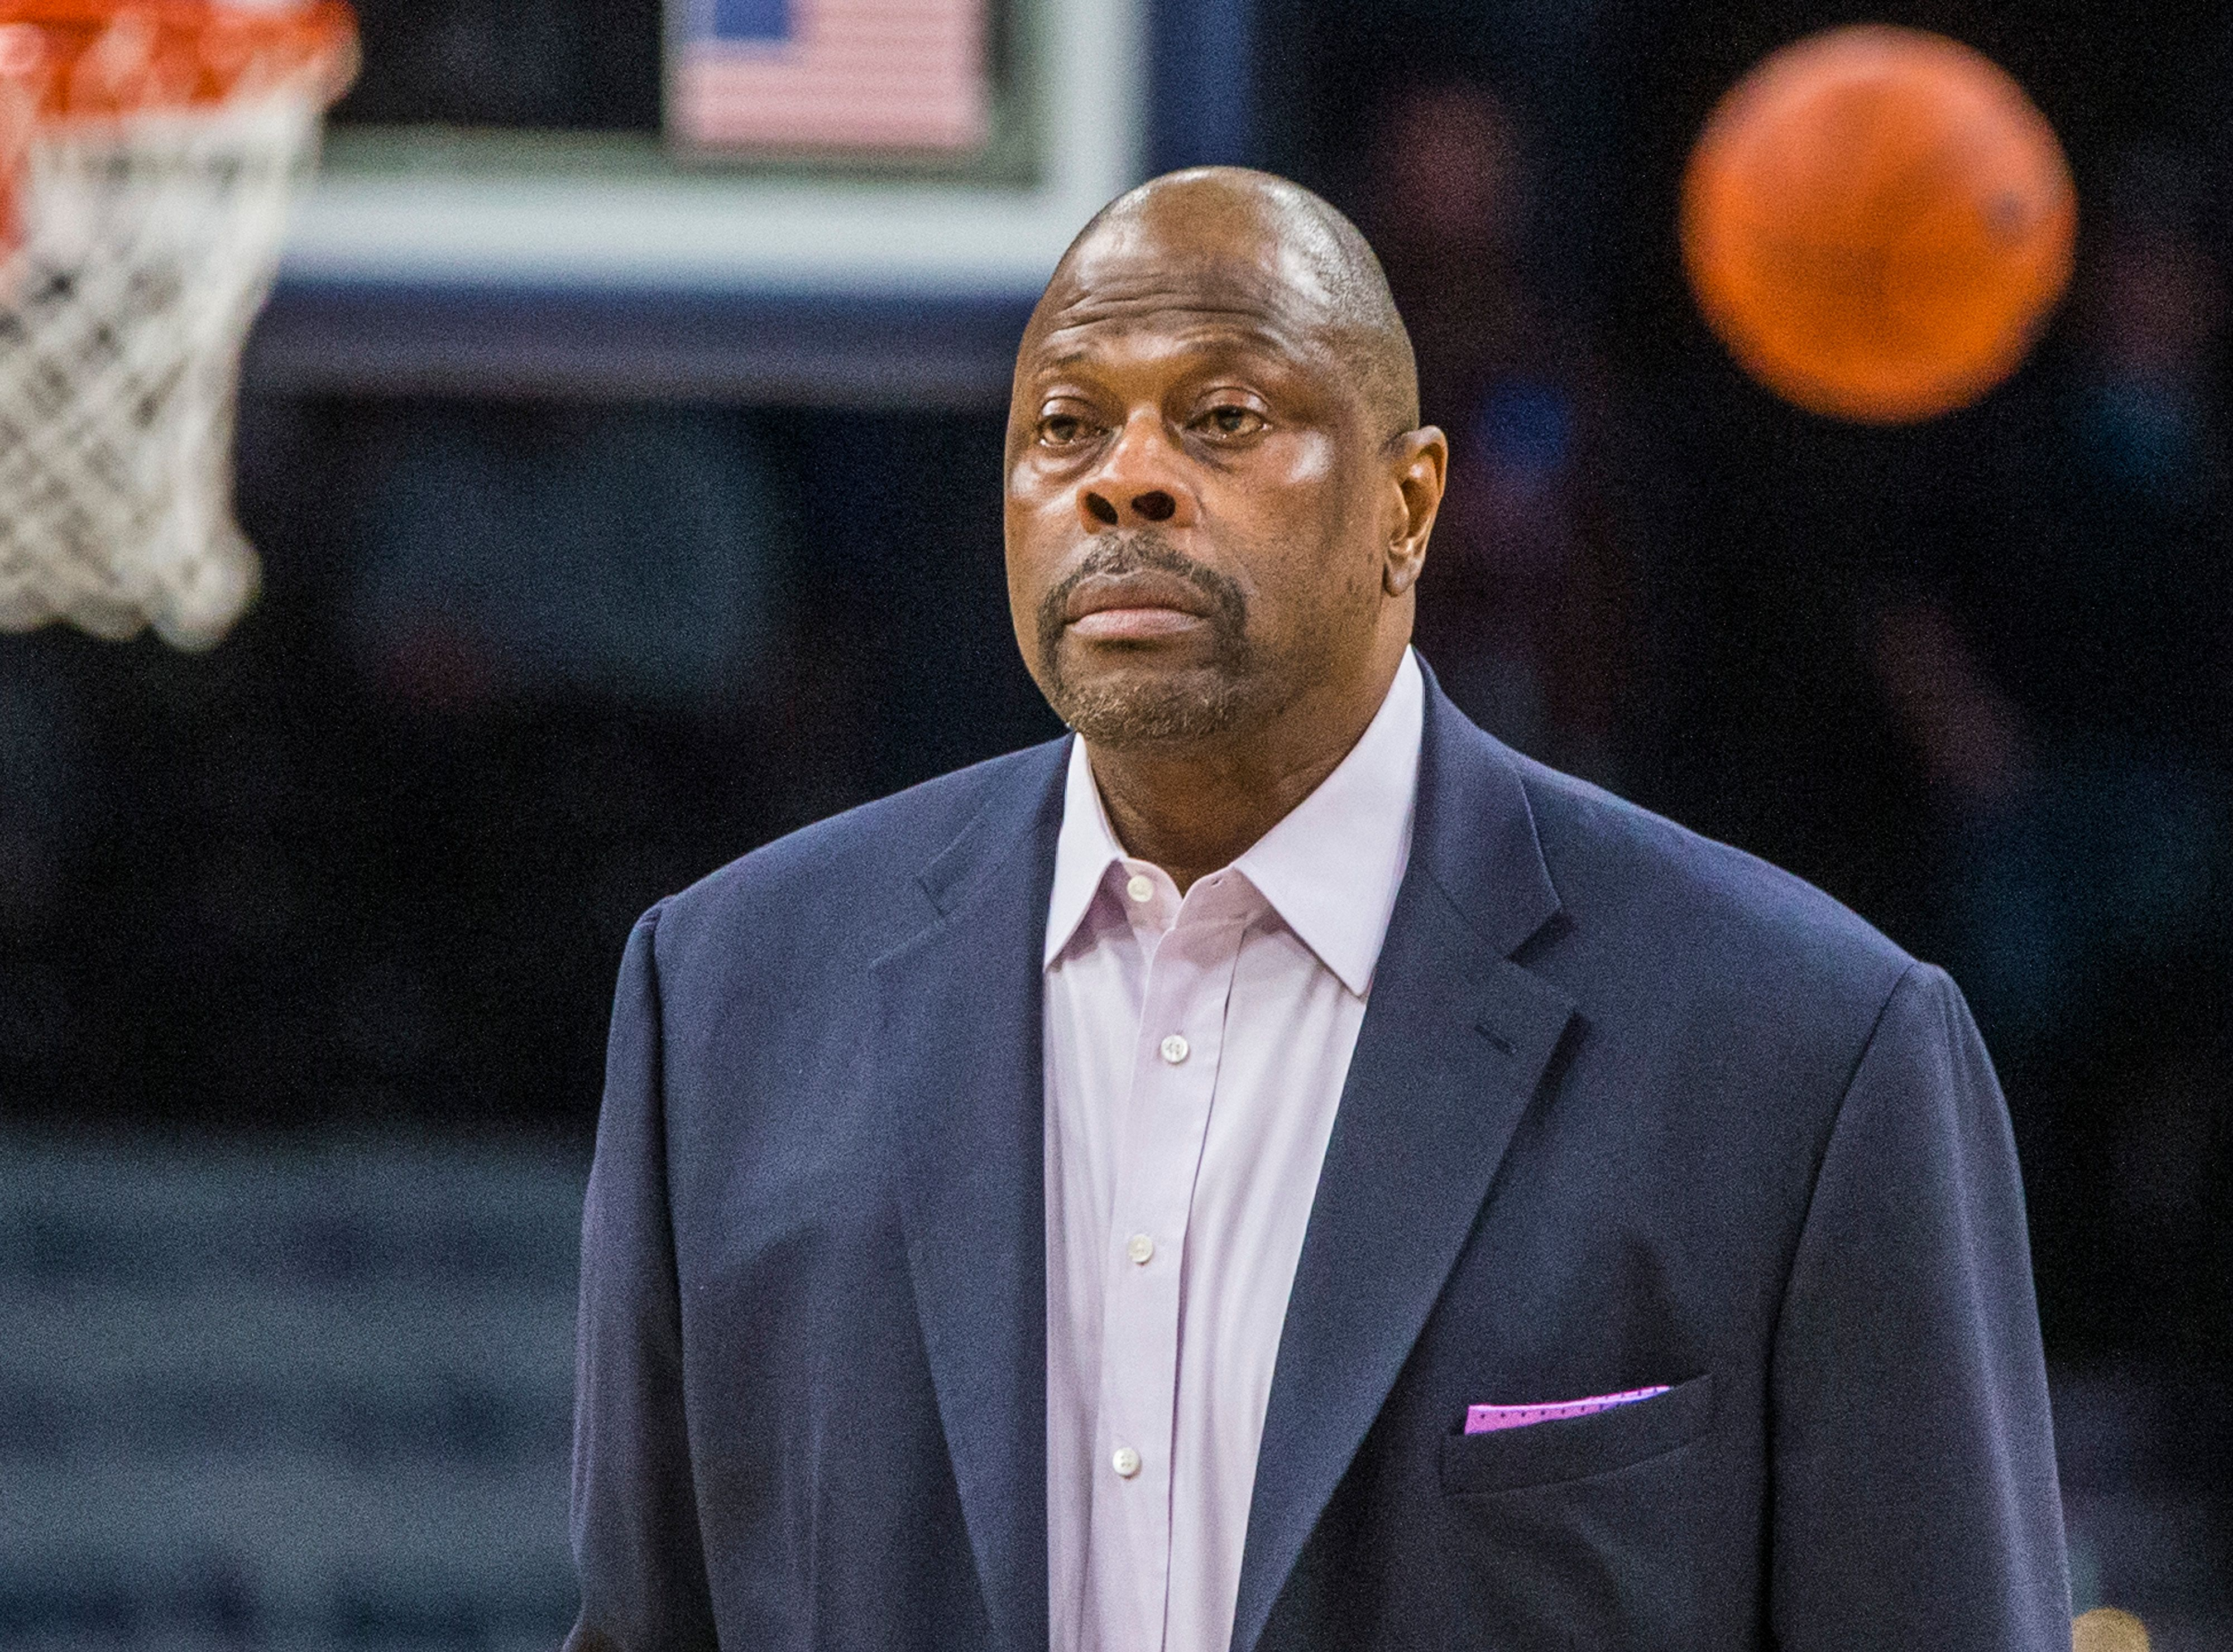 Head Coach Patrick Ewing from Georgetown University during a game between Butler and Georgetown at Capital One Arena in Washington, DC. | Photo: Tony Quinn/ISI Photos/Getty Images